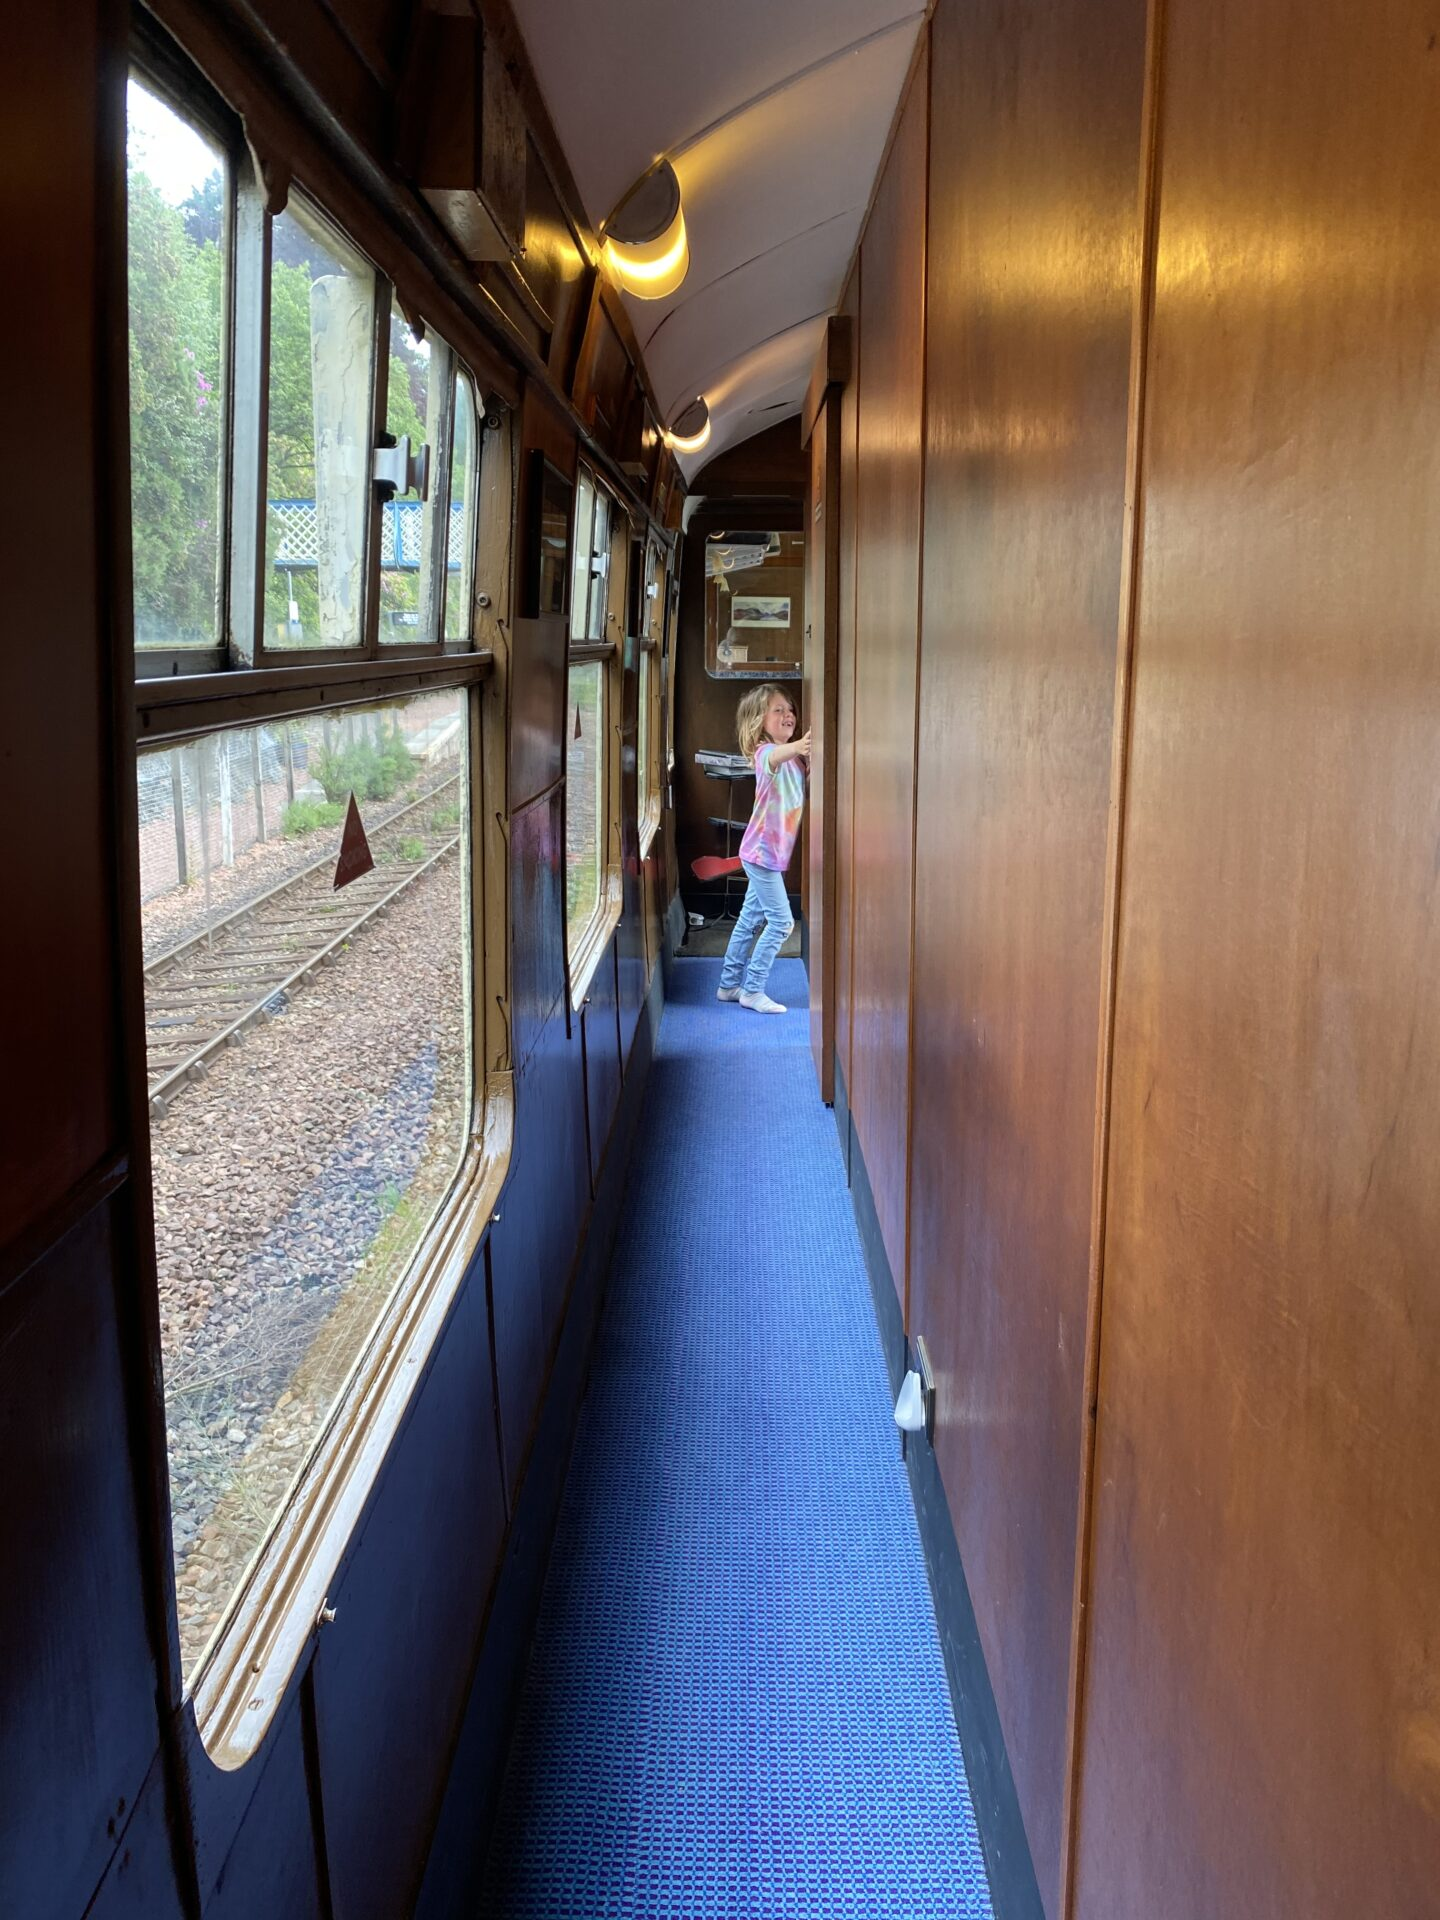 child in old railway carriage